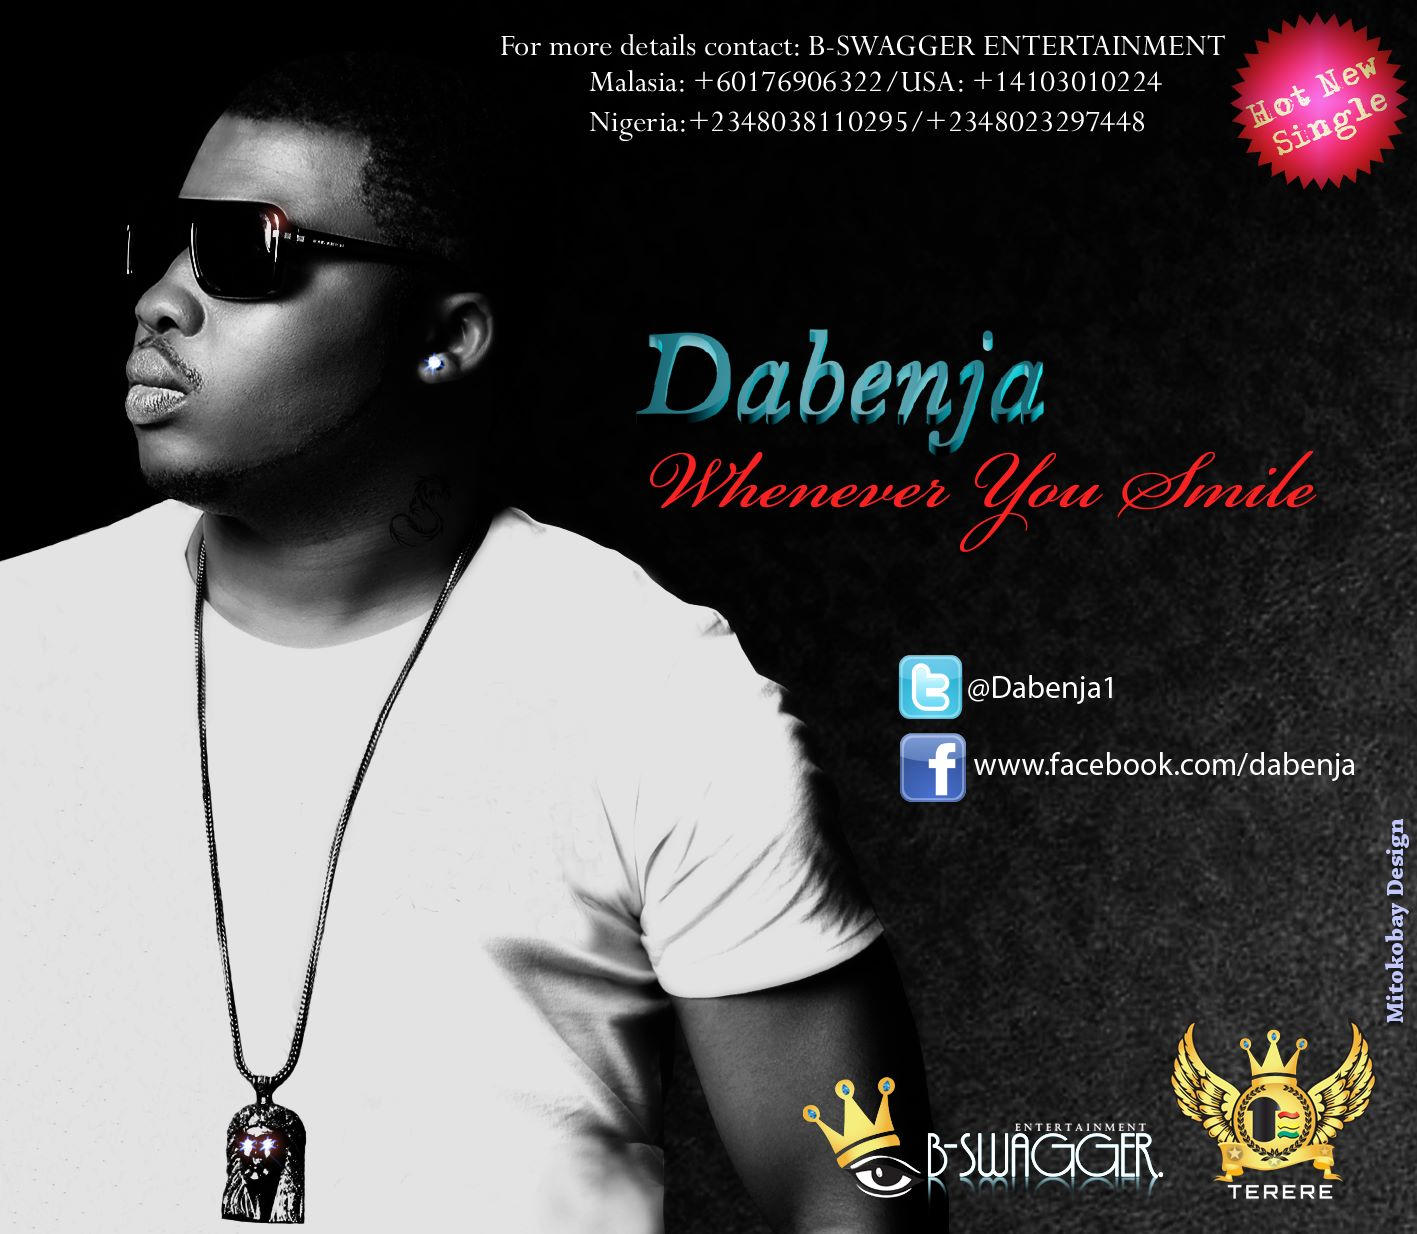 Dabenja - WHENEVER YOU SMILE [prod. by Micah] Artwork | AceWorldTeam.com